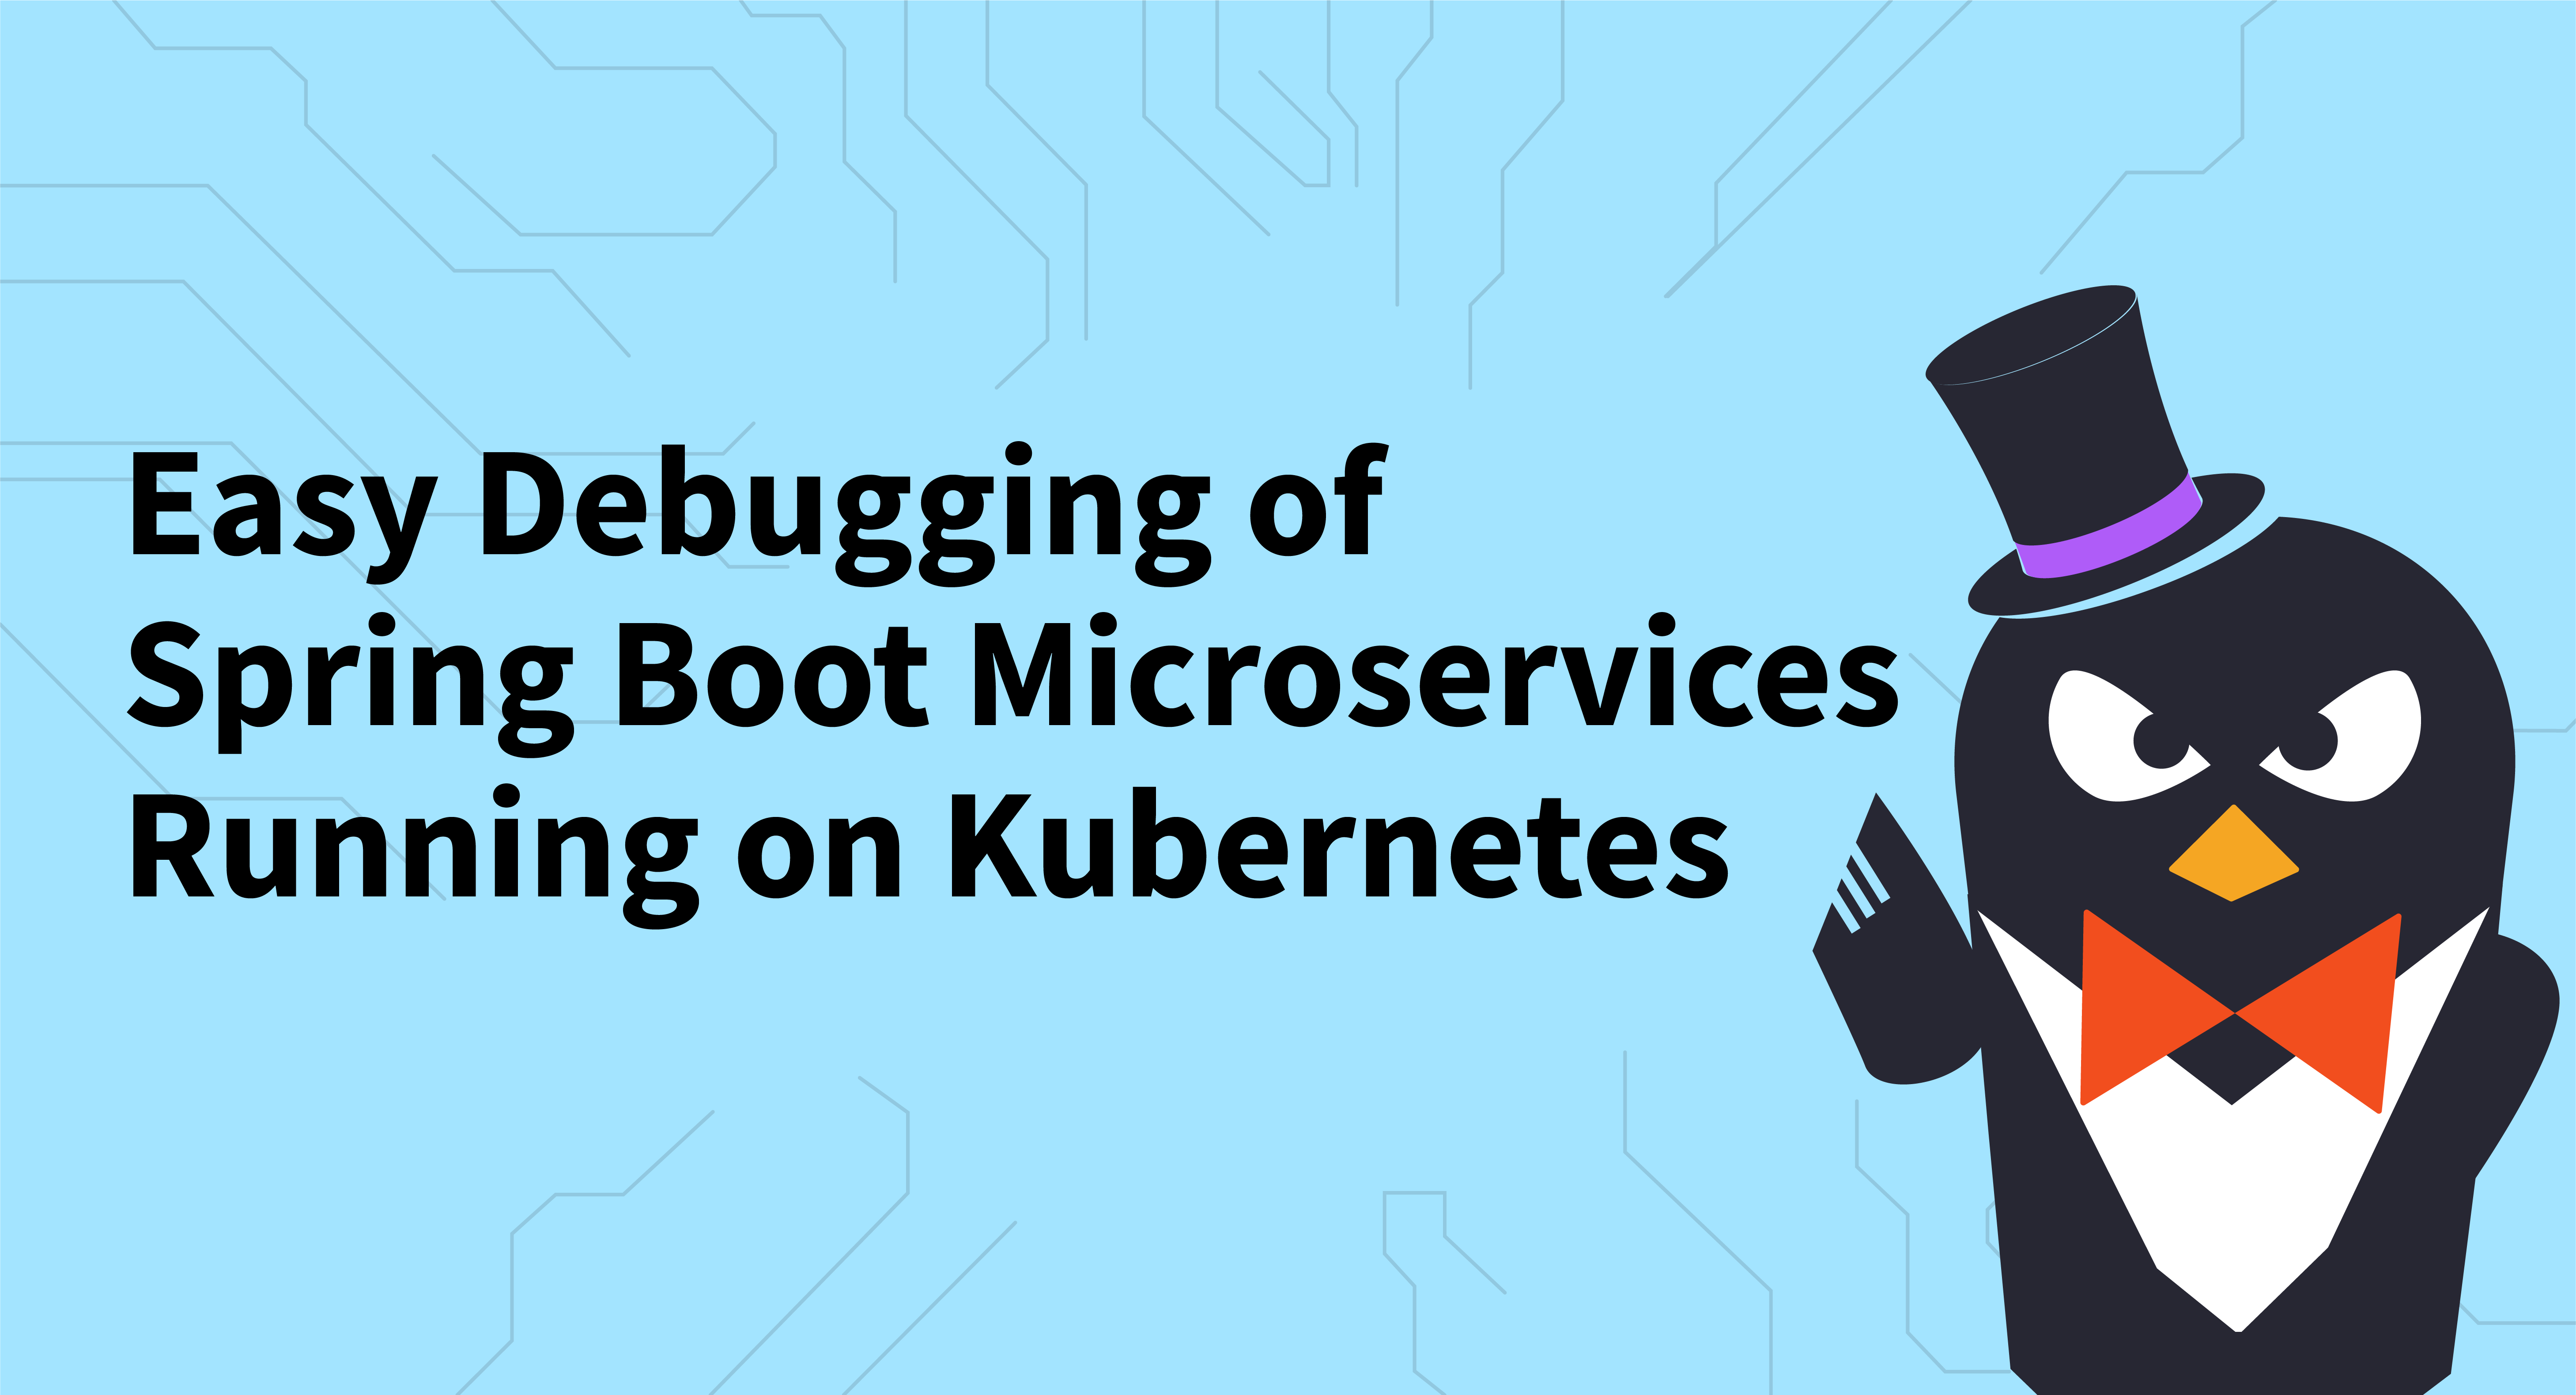 Easy Debugging of Spring Boot Microservices Running on Kubernetes